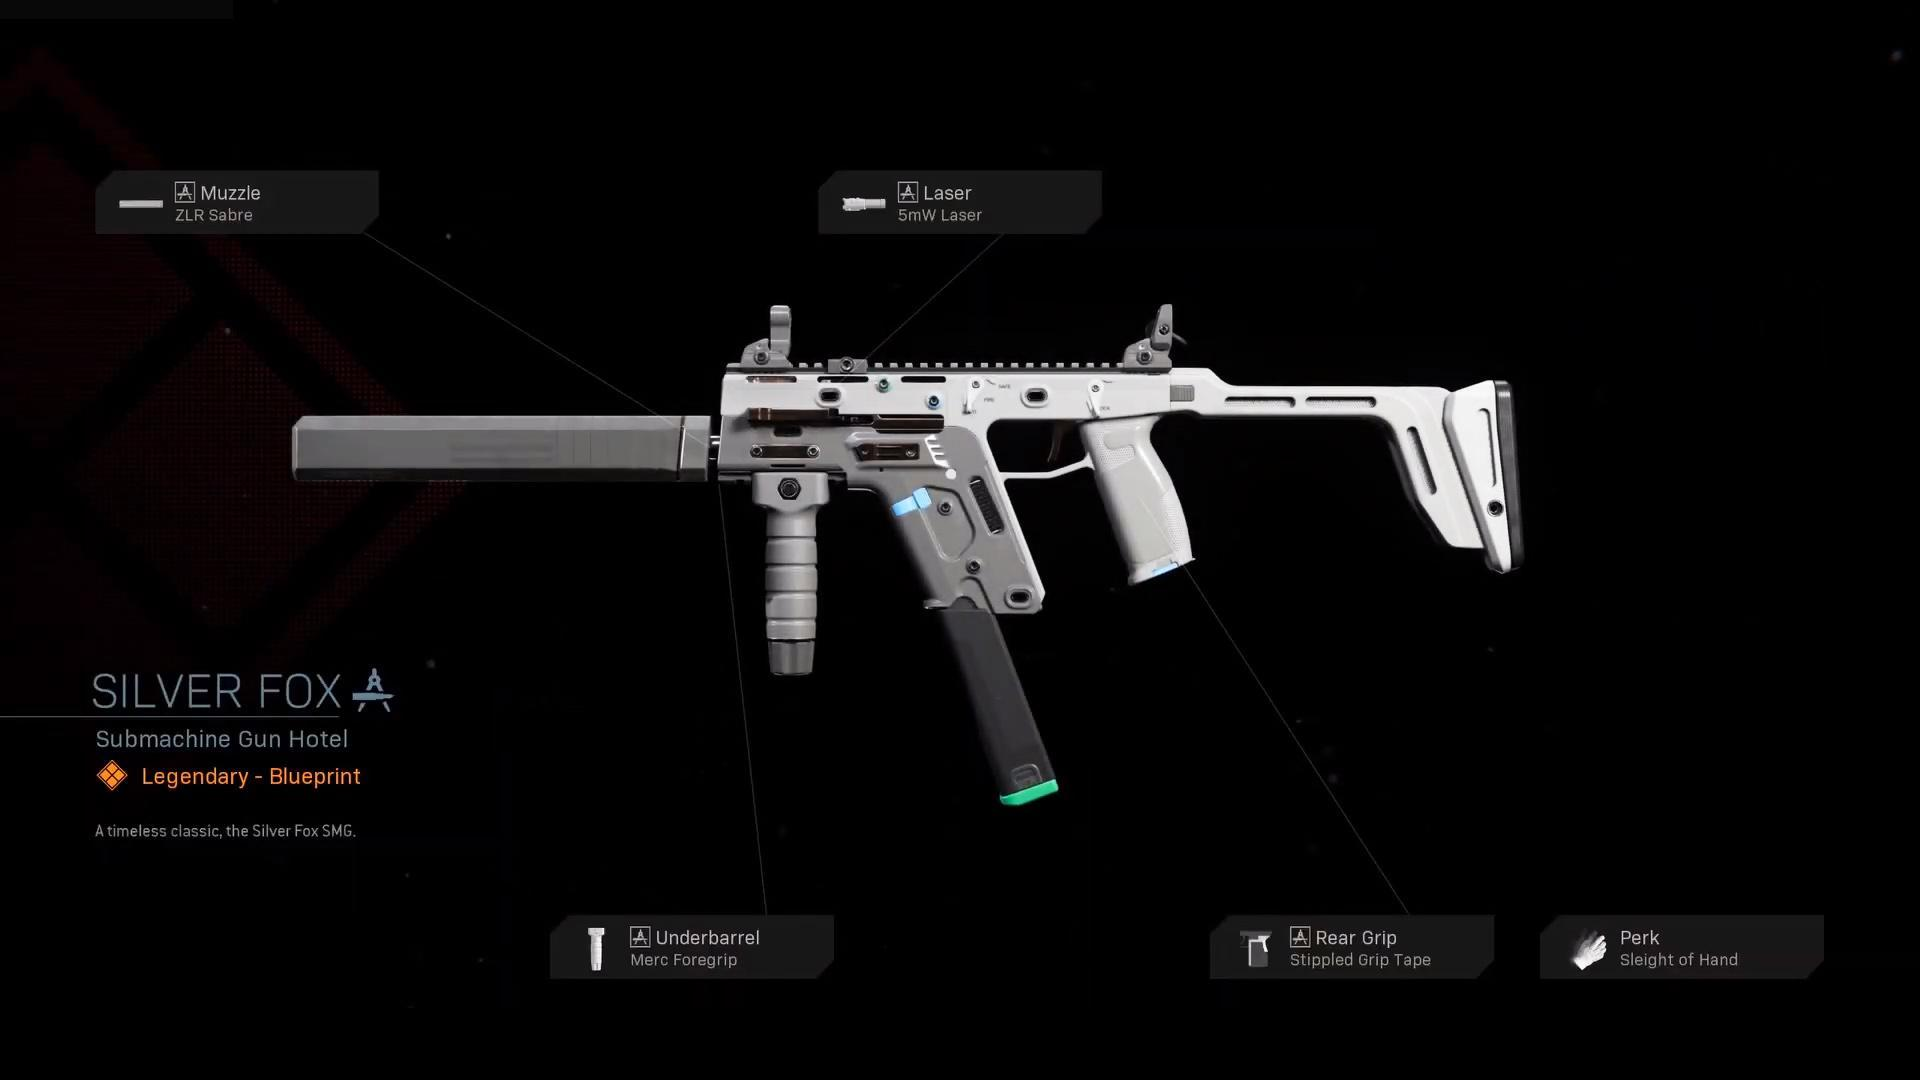 Silver Fox Cod Warzone Weapons Legendary Blueprint Call Of